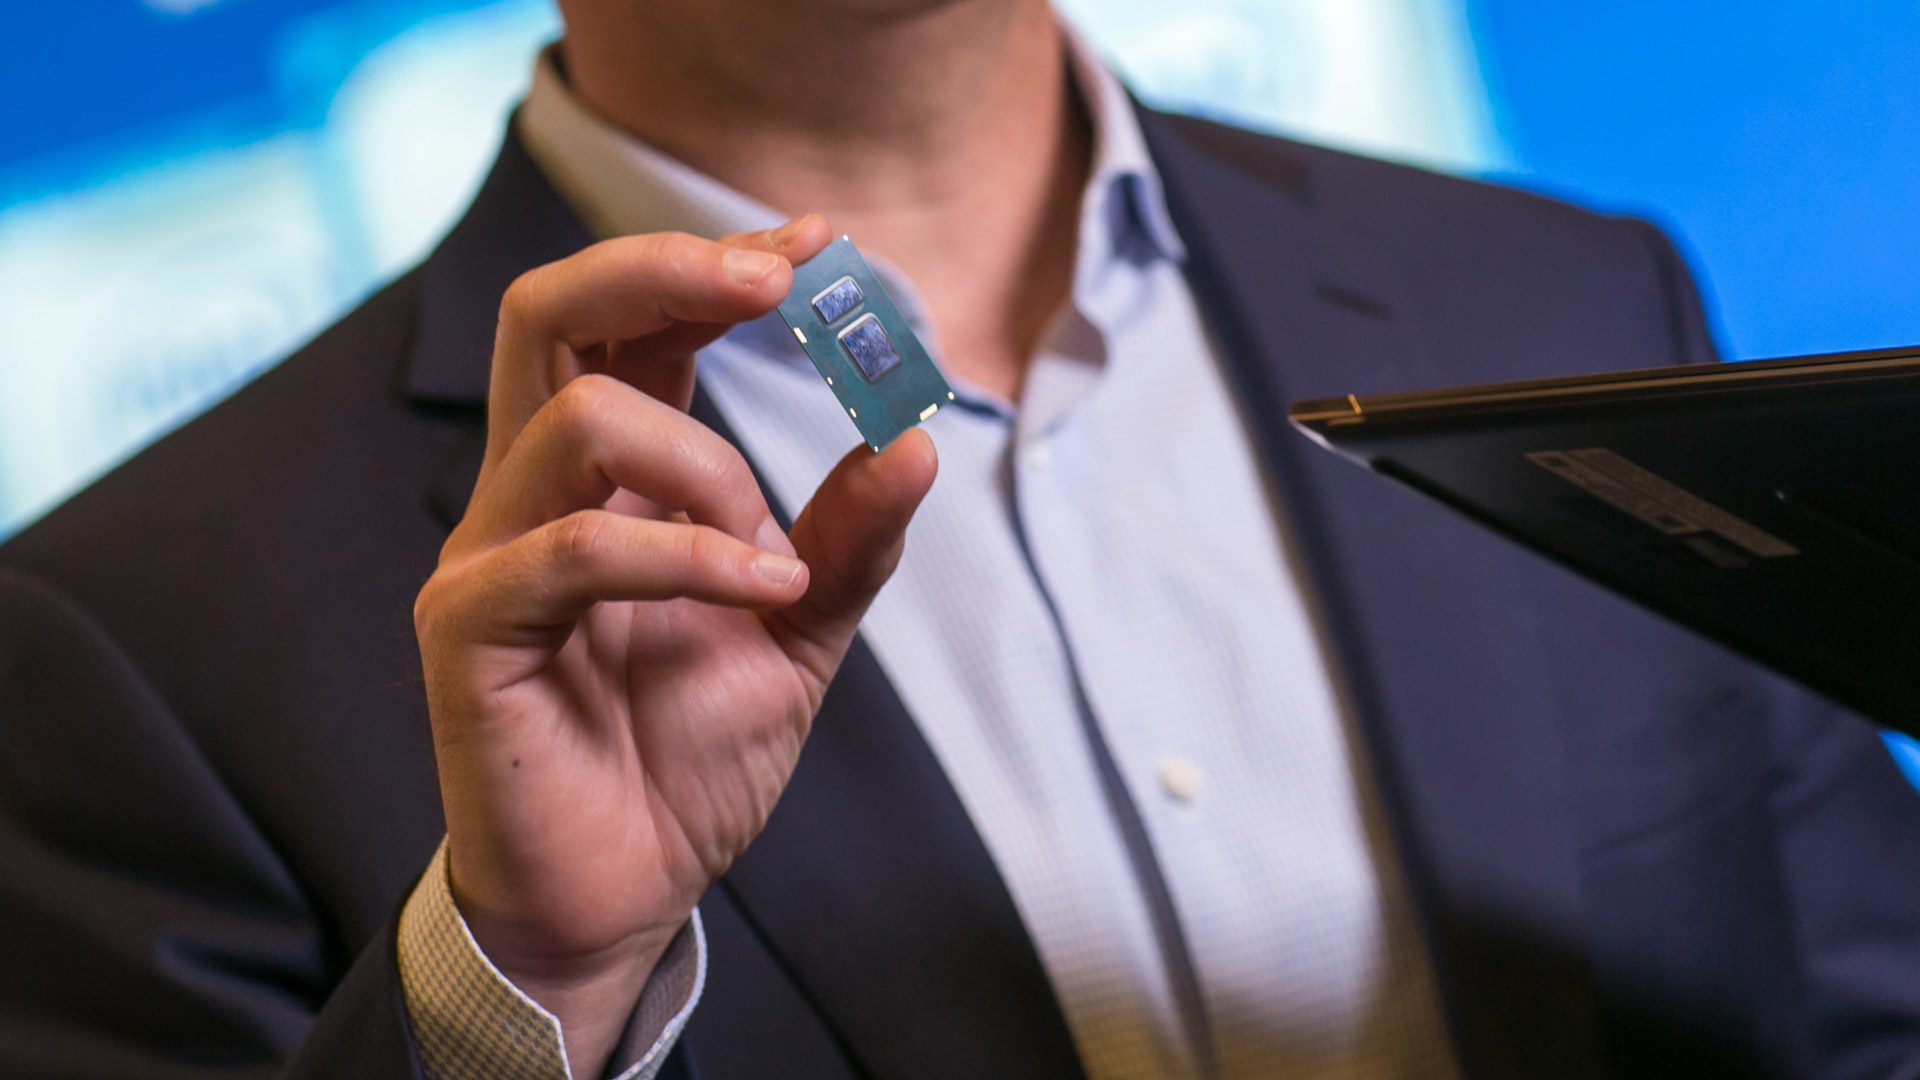 Intel's Next Project Alloy Prototype to Get Enhanced CV Capabilities, Wider FoV, More Powerful Processor